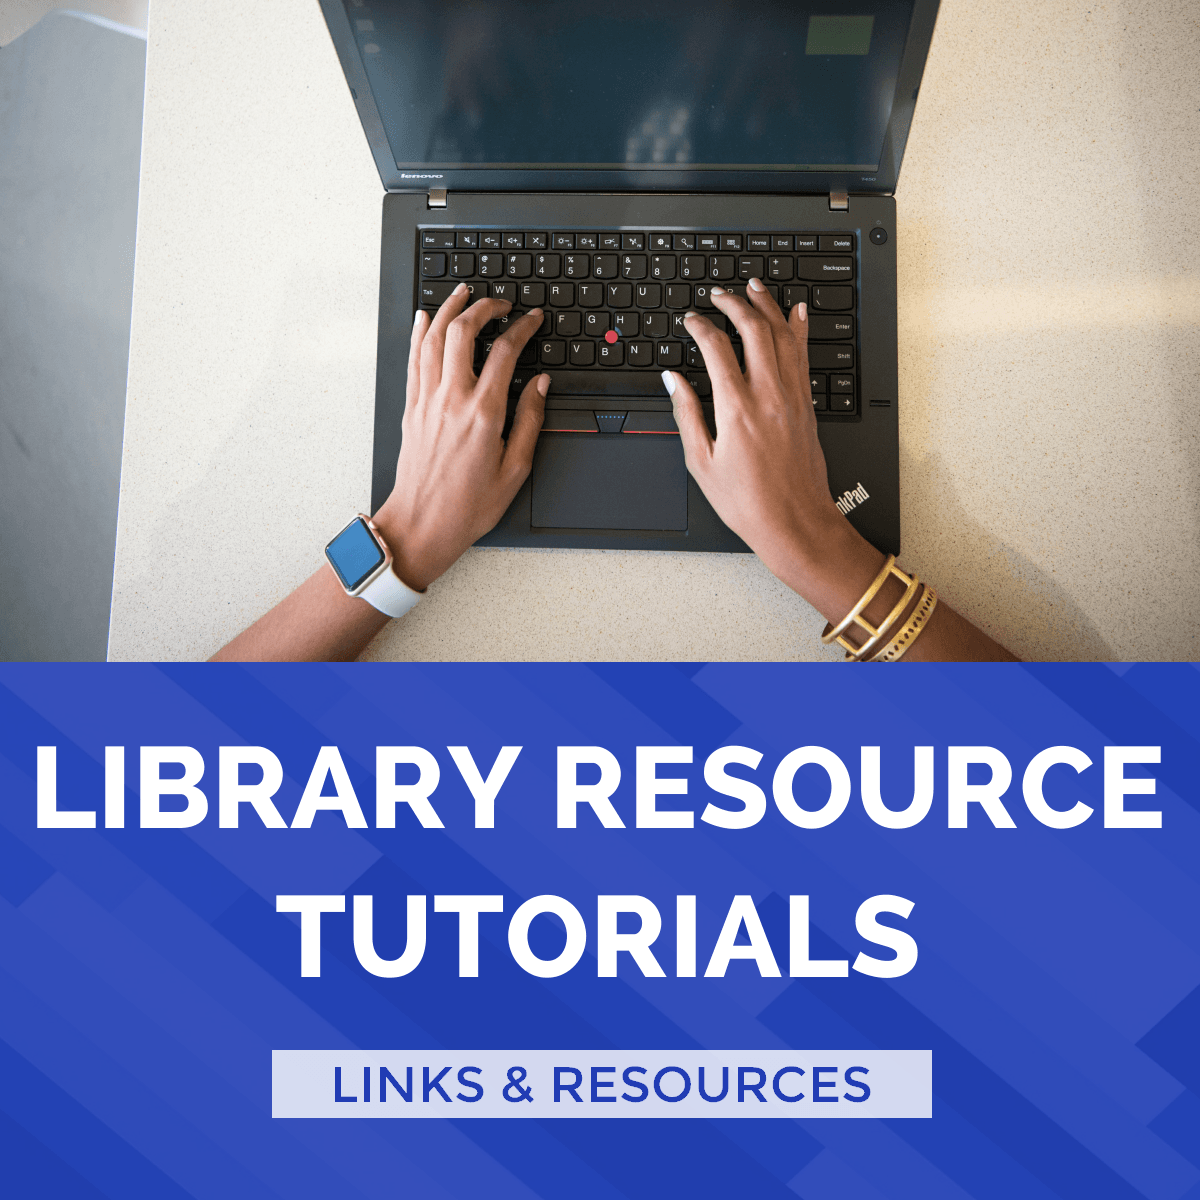 library resource tutorials links & resources